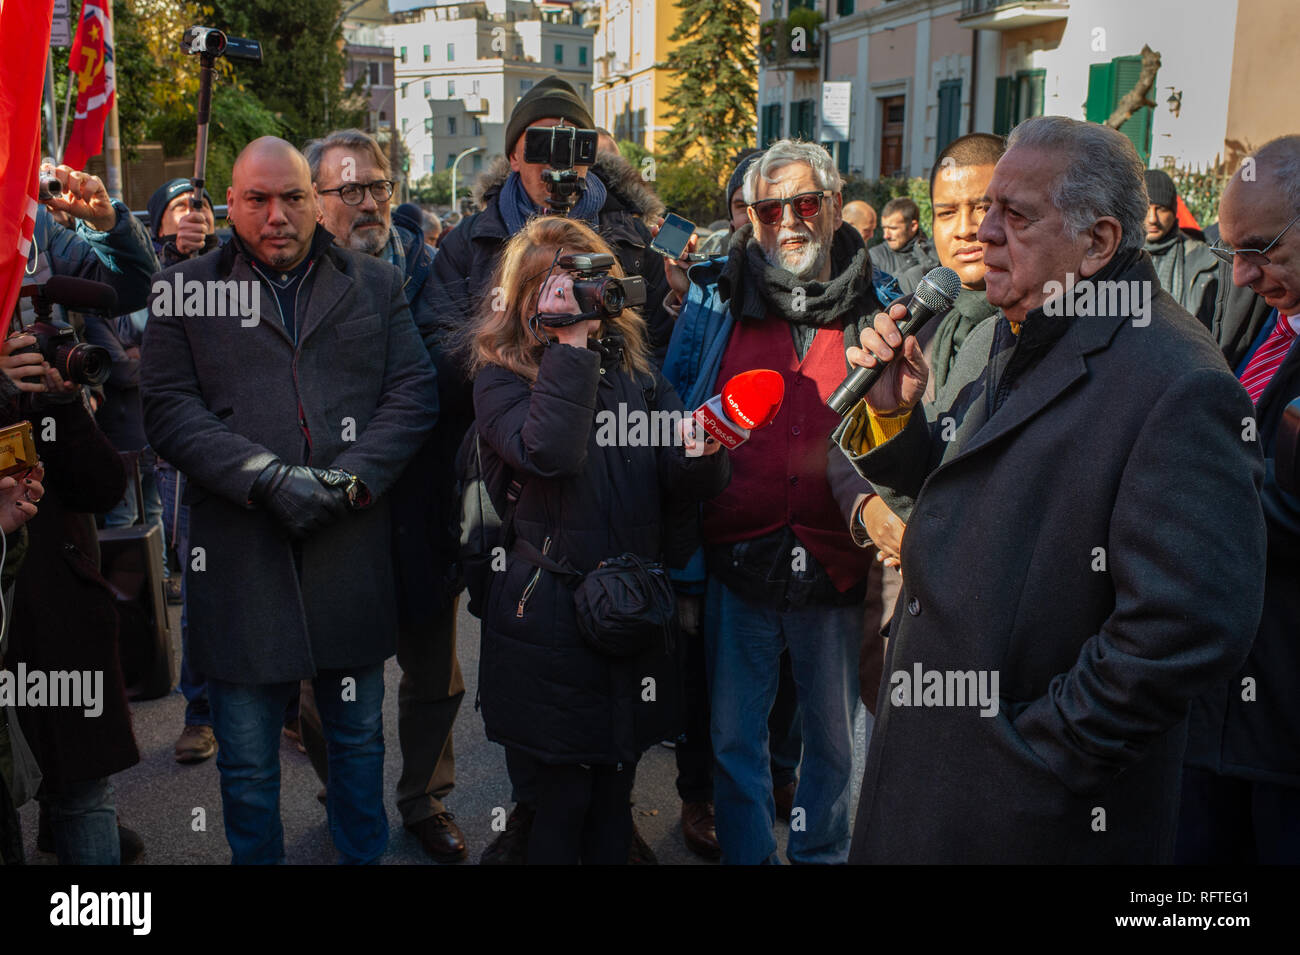 Rome, Italy. 26th January, 2019. In front of the Embassy of the Bolivarian Republic of Venezuela, in Rome, the Venezuelan Ambassador Juliàn Isaìas Rodríguez Díaz meets demonstrators from left-wing Italian parties who have come to show solidarity with the government of President Nicolás Maduro Credit: Roberto Nistri/Alamy Live News - Stock Image